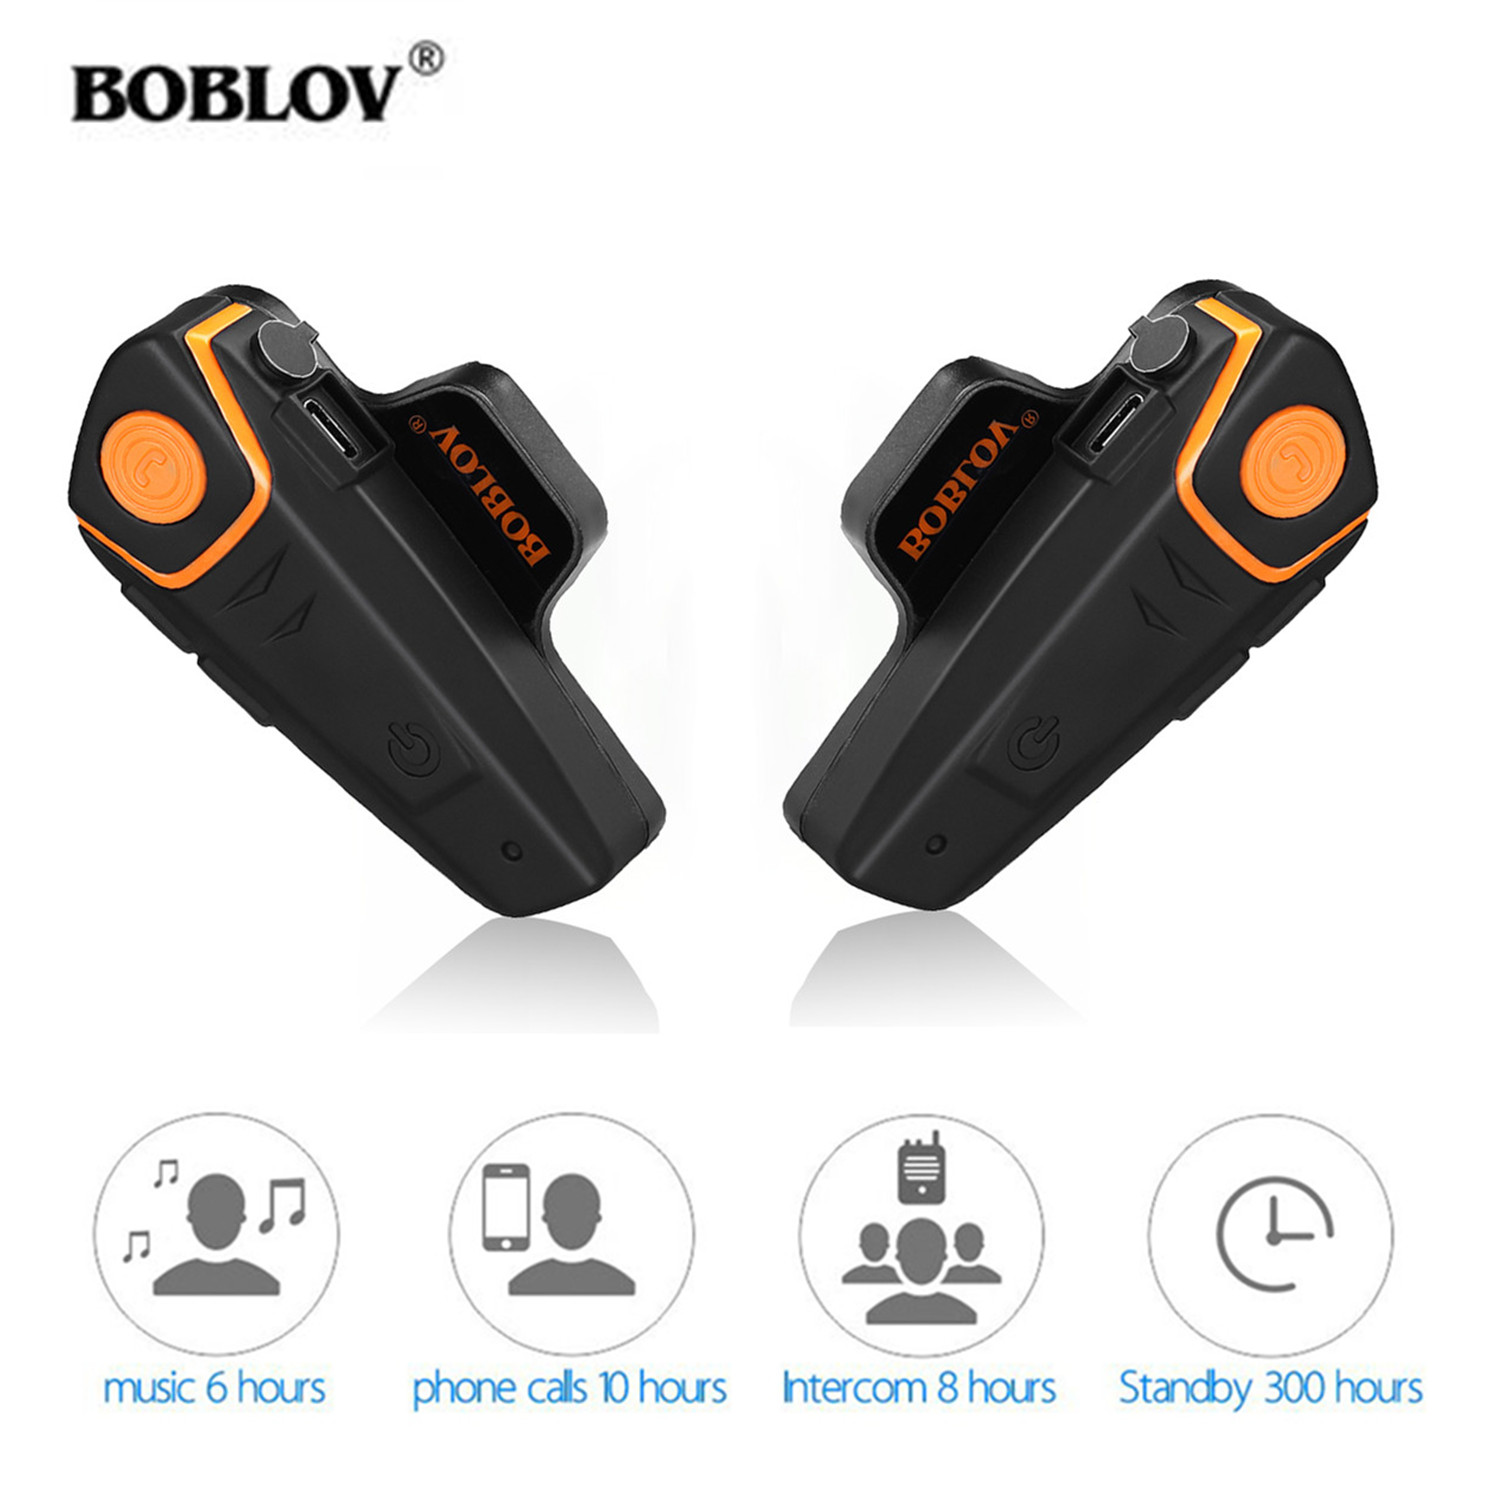 2 Pcs BOBLOV BT-S2 1000m  Motorcycle Helmet Intercom Headset Handsfree Moto Bluetooth BT Interphone Waterproof FM MP3 Type-C